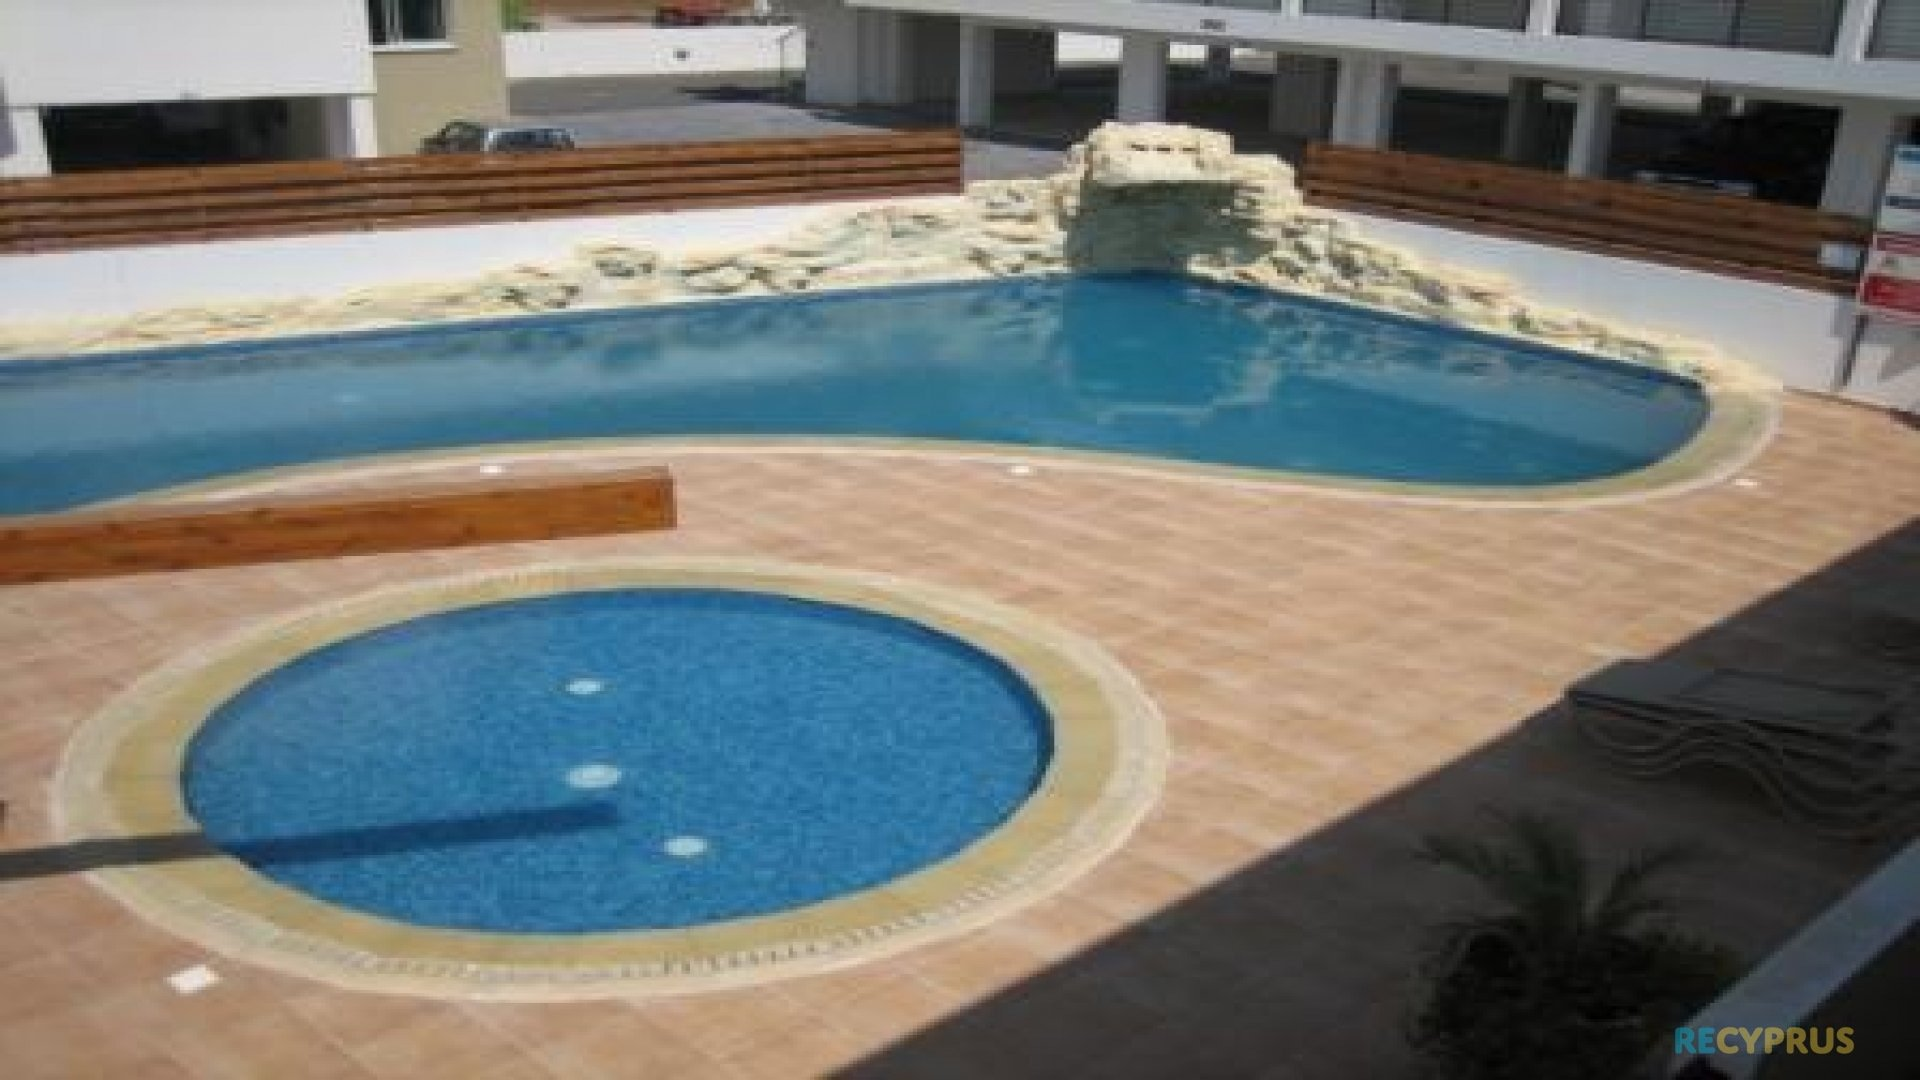 Apartment for sale Kapparis Famagusta Cyprus 8 3458